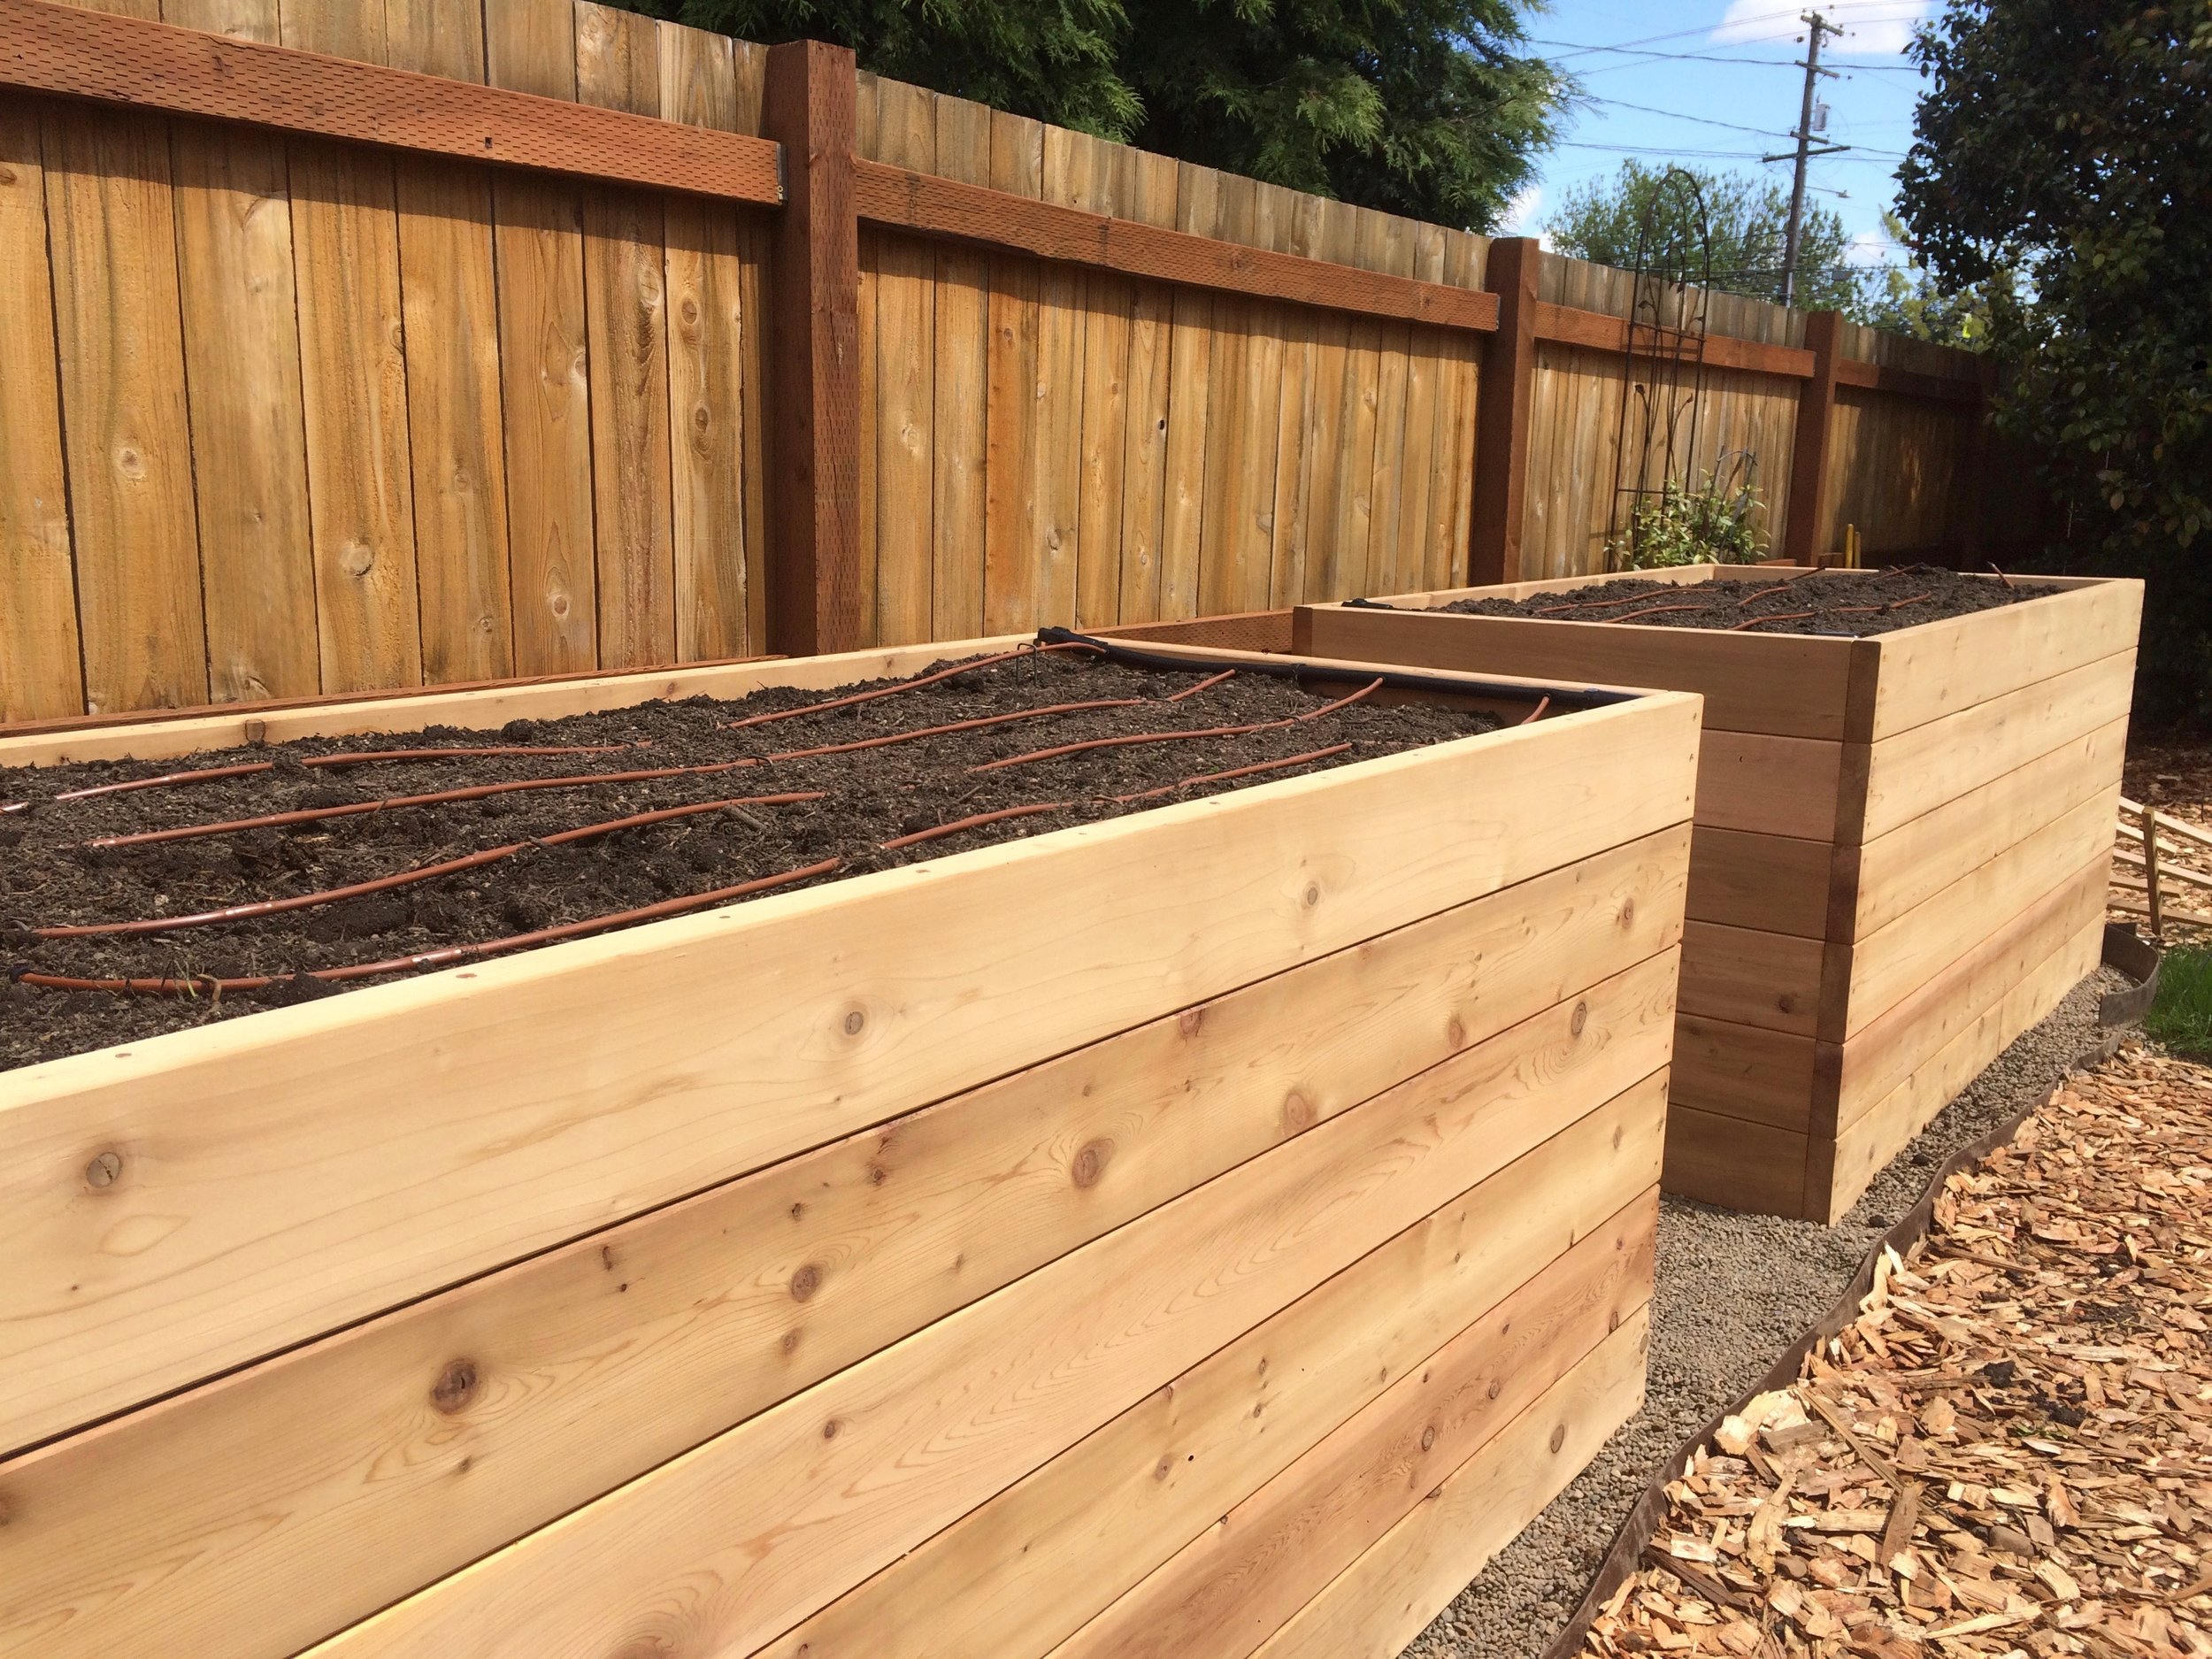 Some extra tall Cedar raised garden beds for this SE Portland Residence